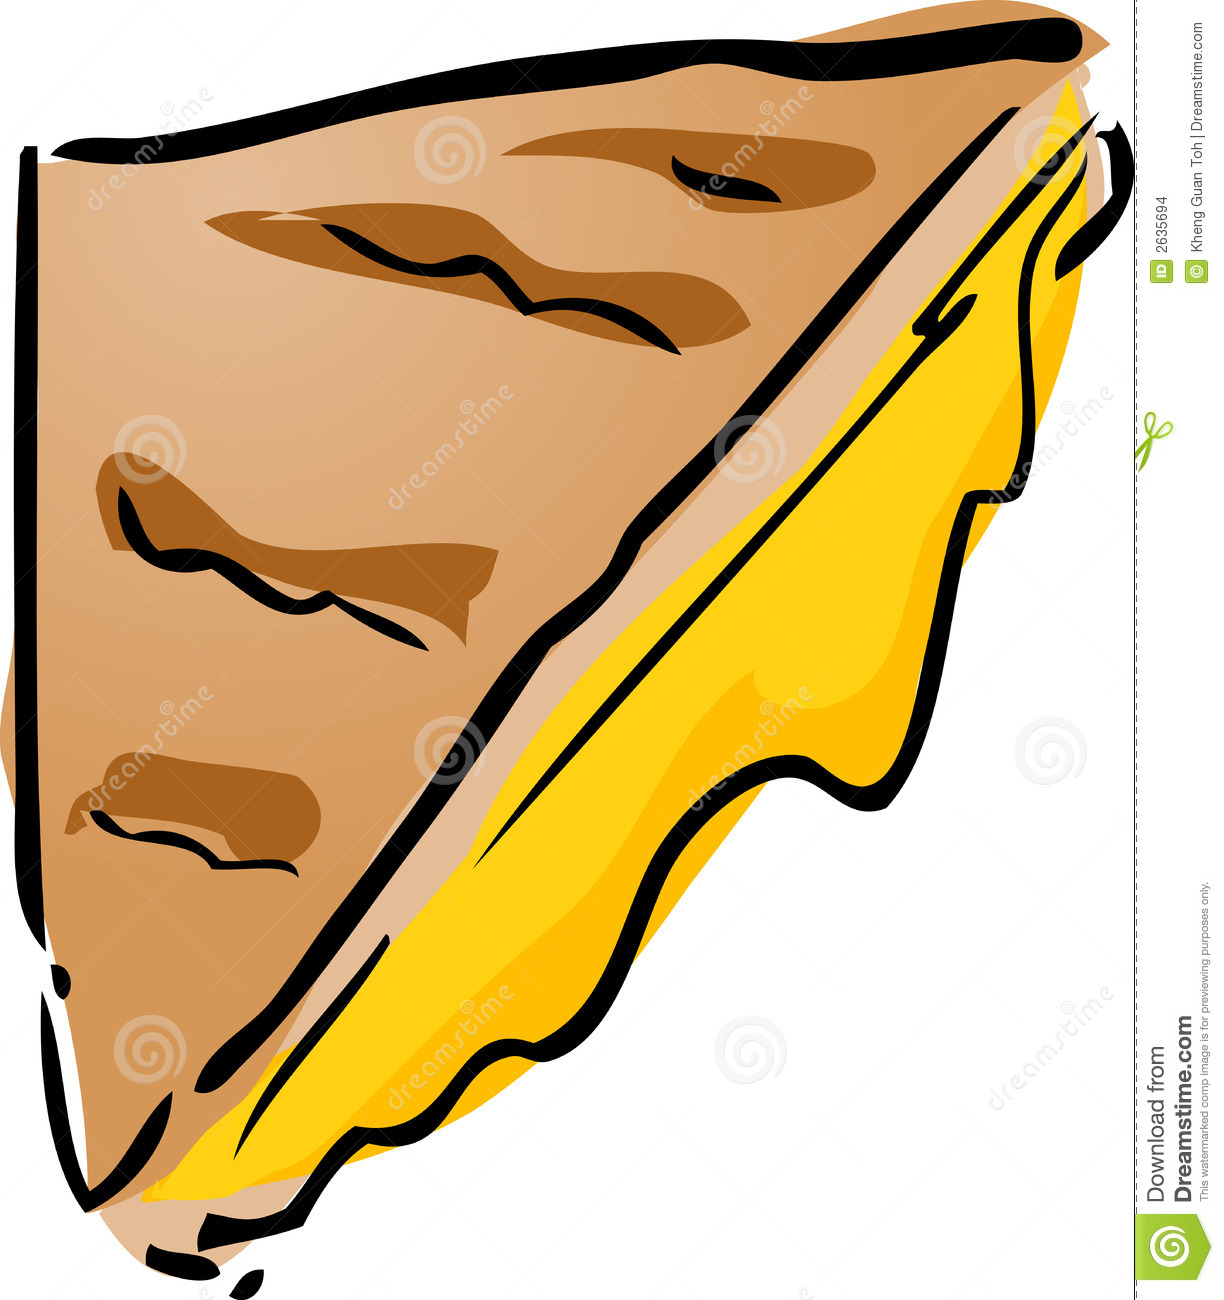 Grilled Cheese Clipart - Clipart Suggest